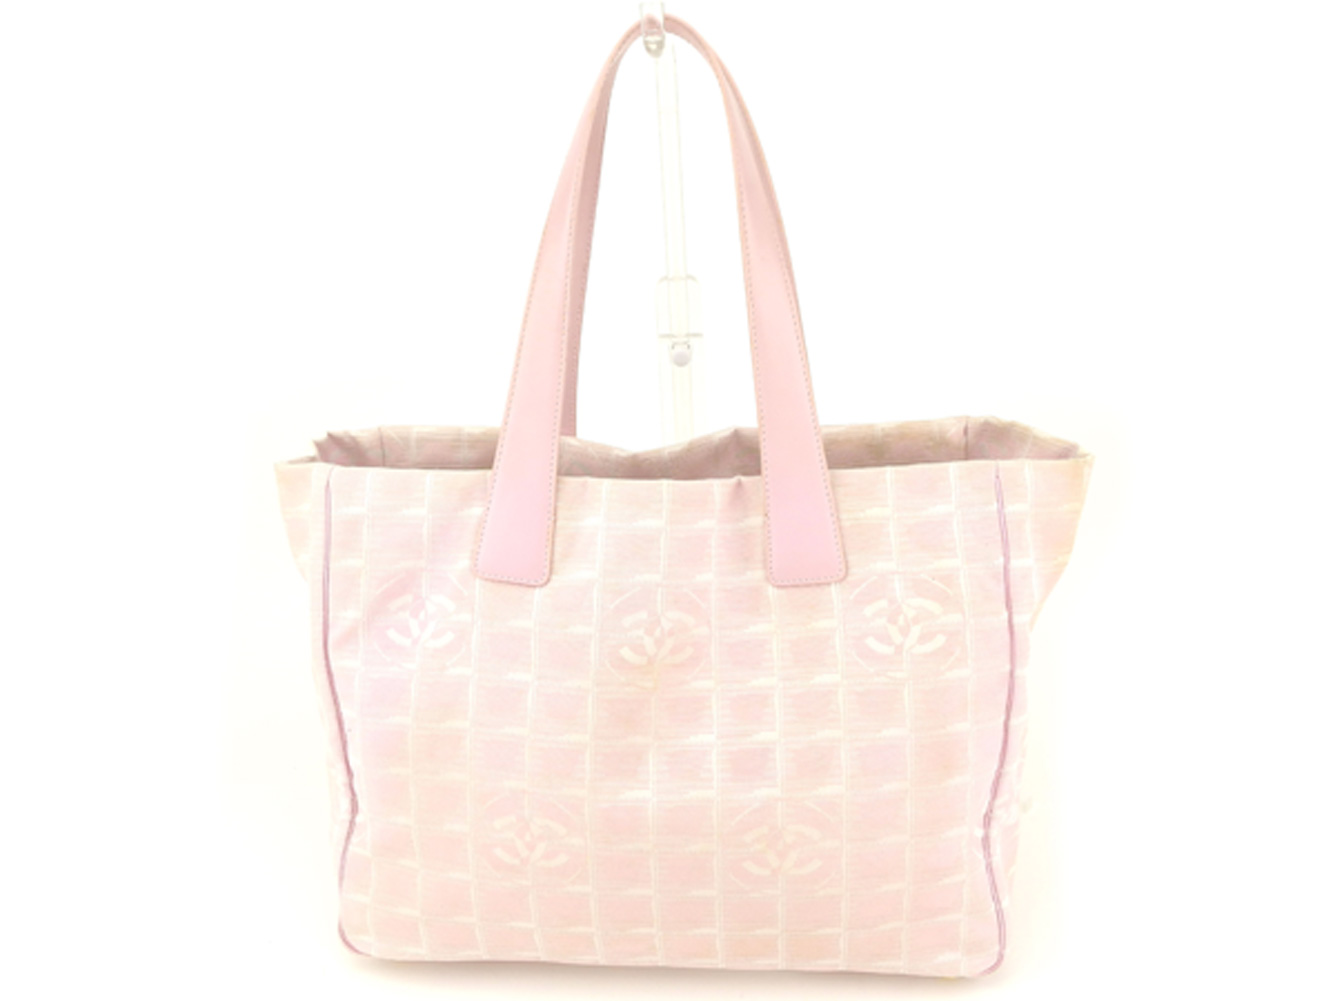 12f57ed96eddb9 BRAND DEPOT TOKYO: Chanel CHANEL tote bag shoulder bag Lady's Thoth MM  current style bell line pink gold nylon jacquard X leather popularity  quality goods ...